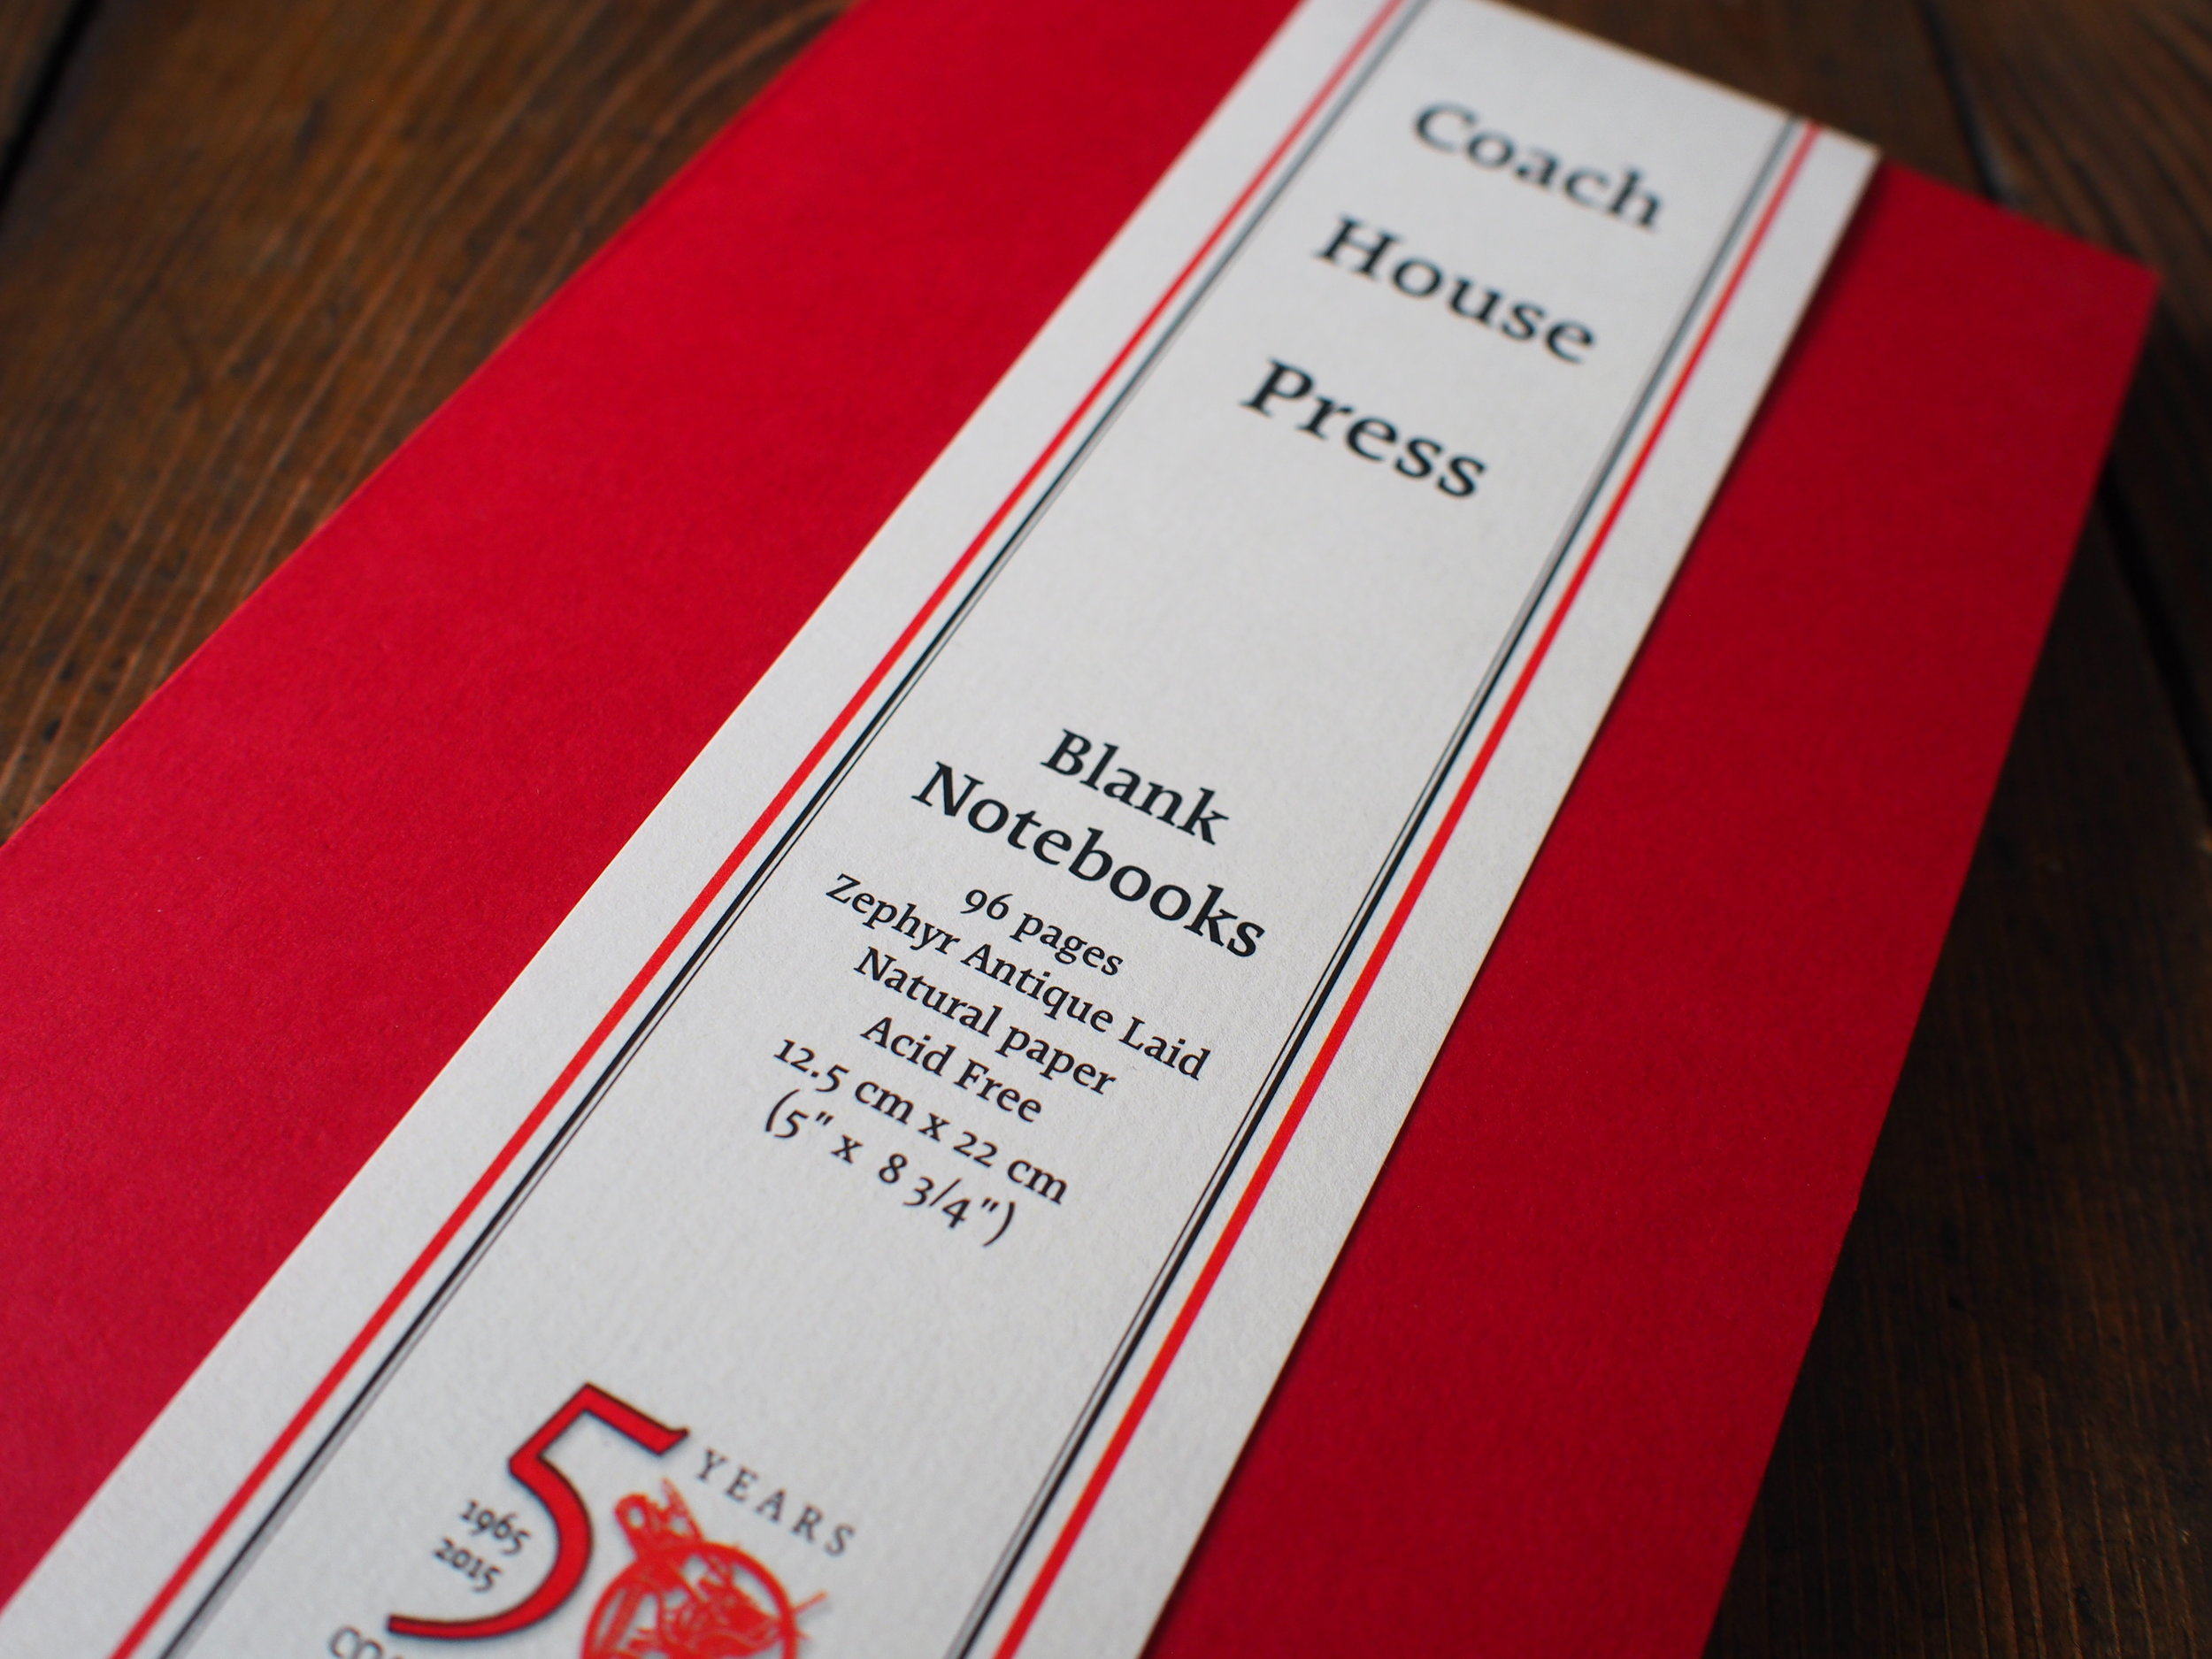 Coach House Press - Red Softcover Blank Laid Paper Notebook